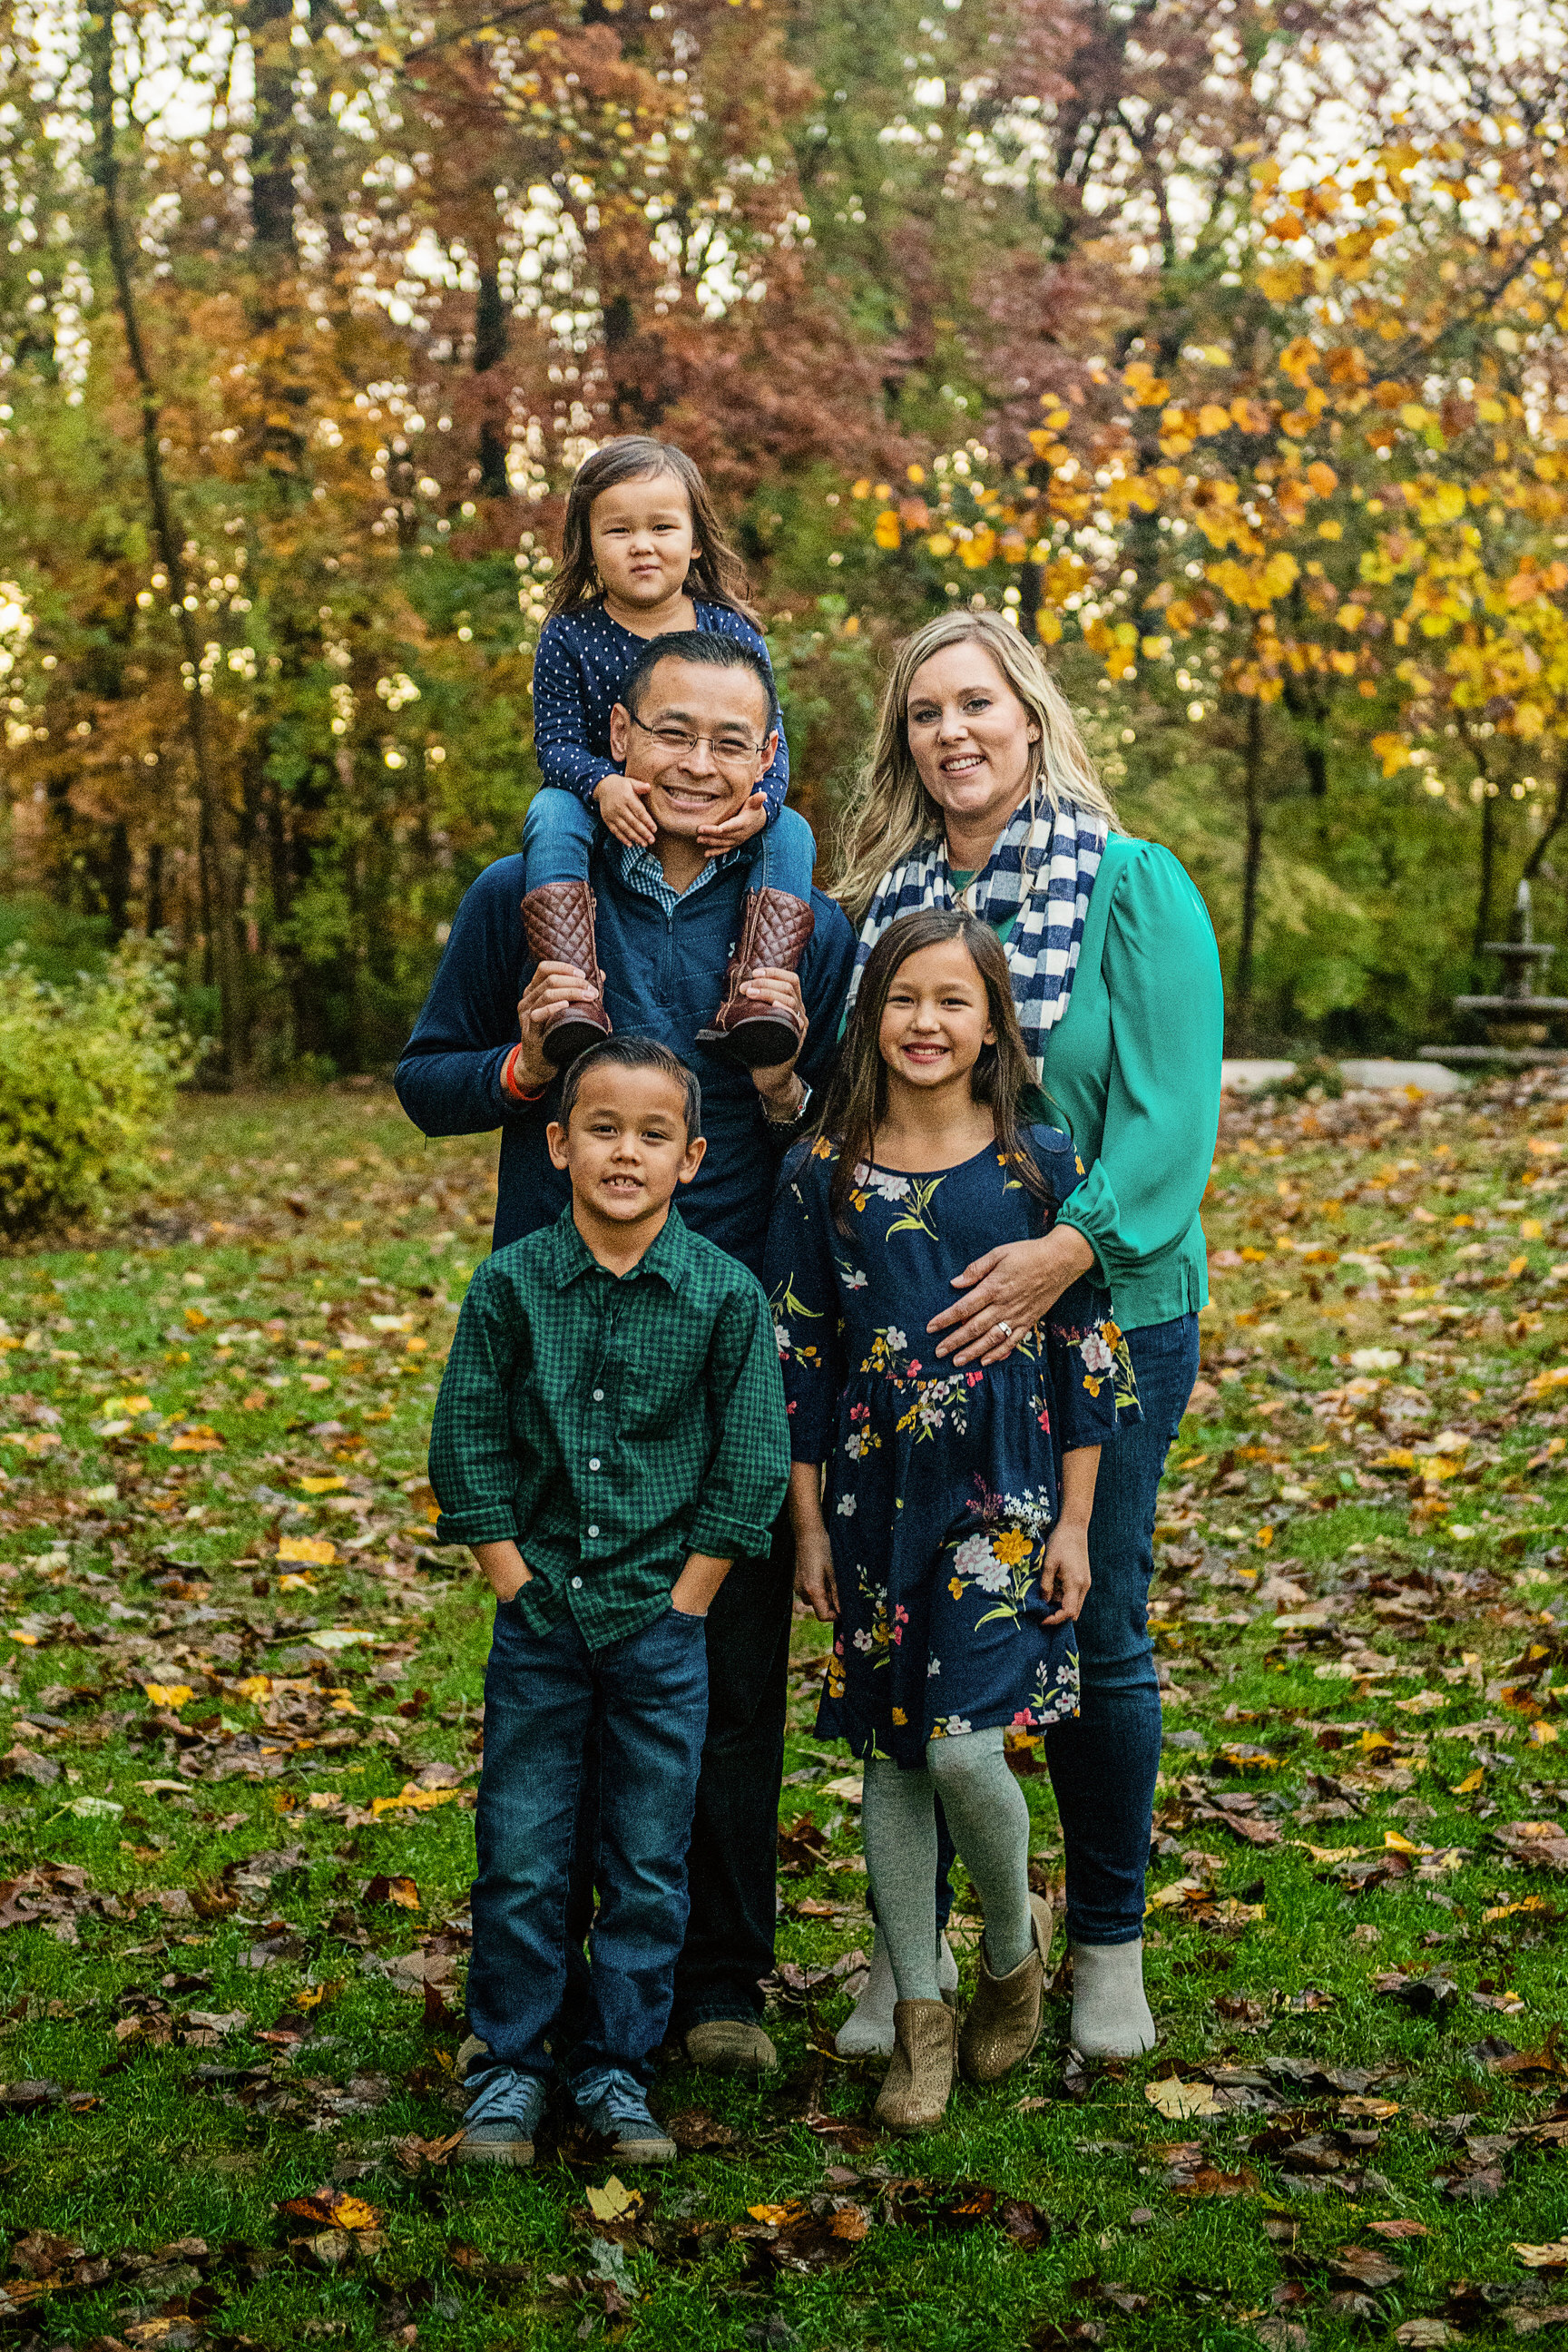 MarylandFamilyPhotography-LienFamily2018-58.jpg